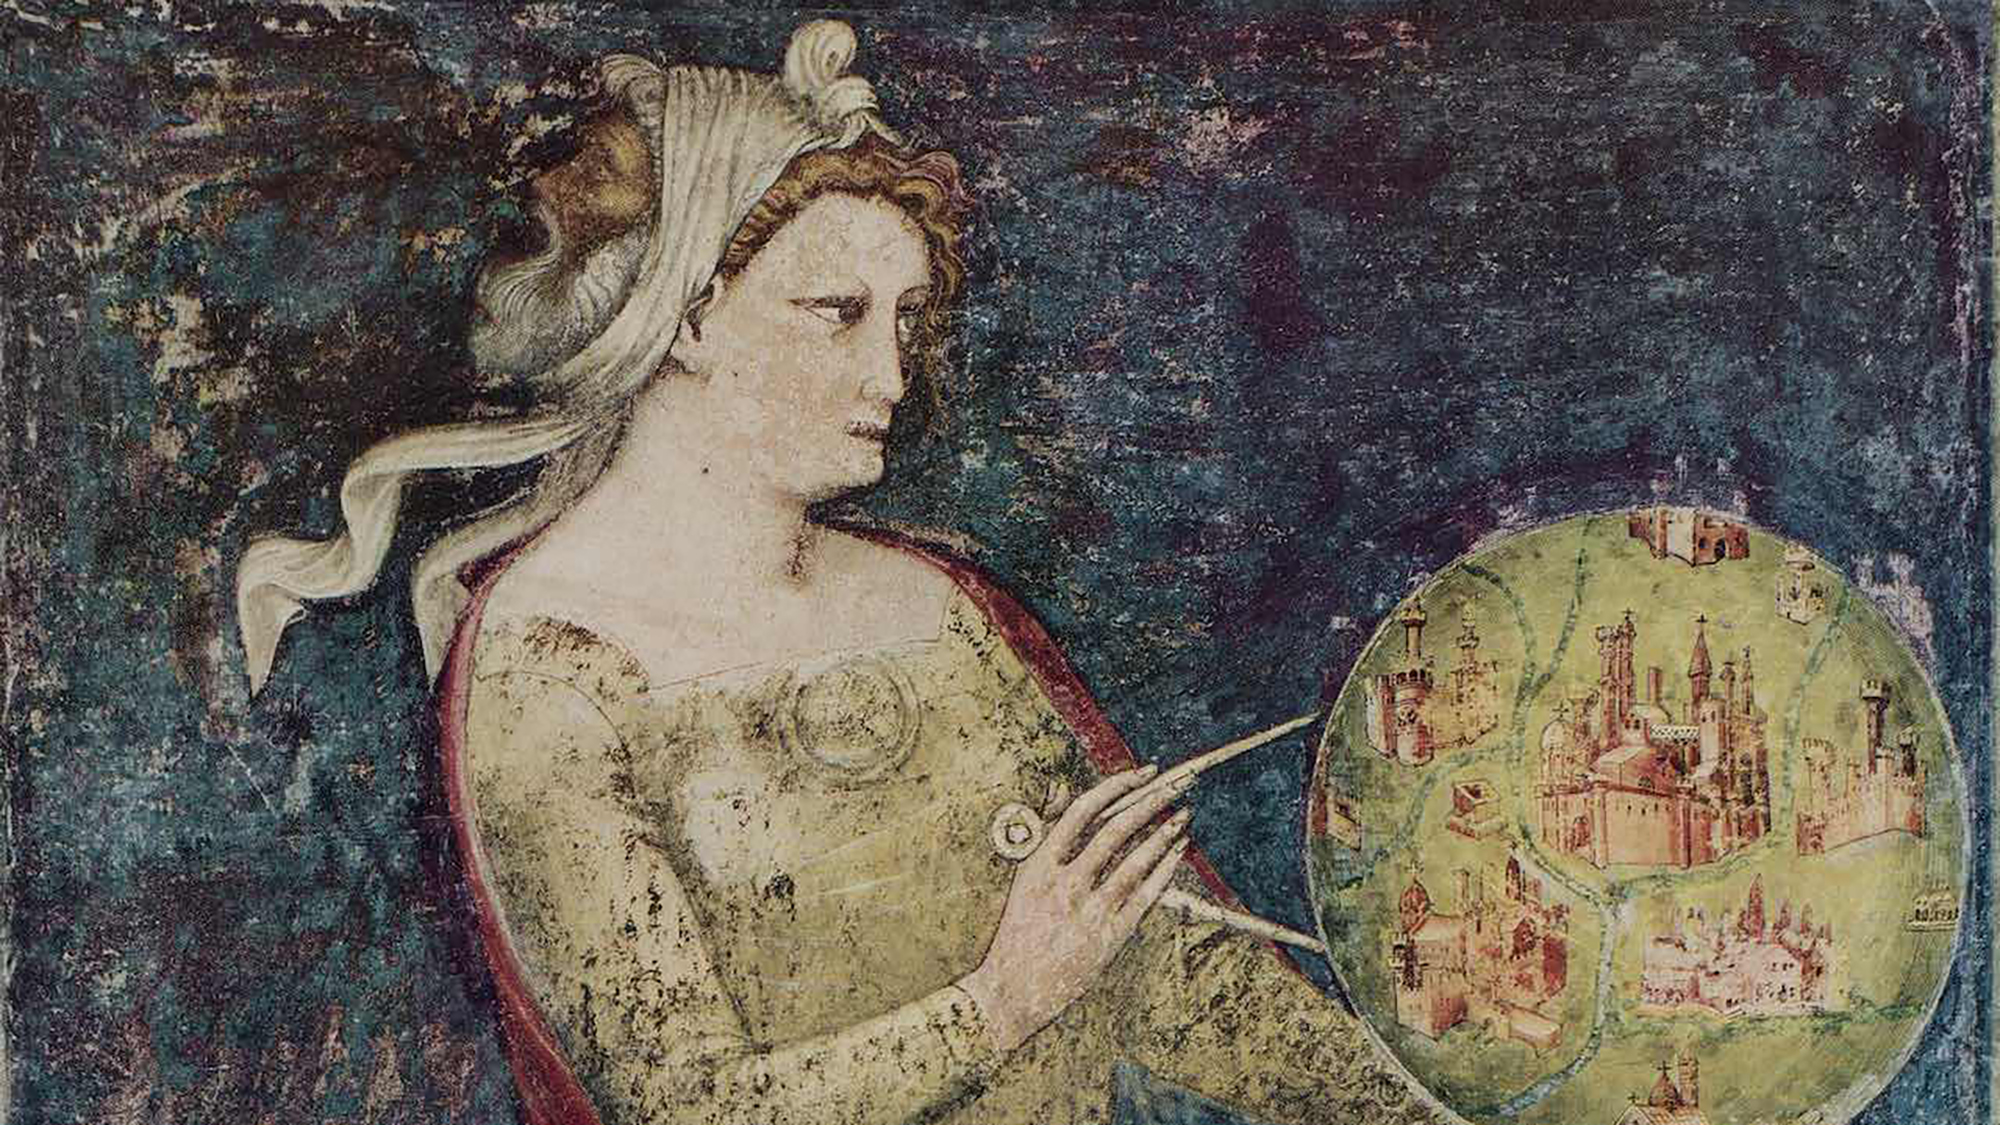 A historical painting shows a woman measuring a model of earth with a pair of compasses.